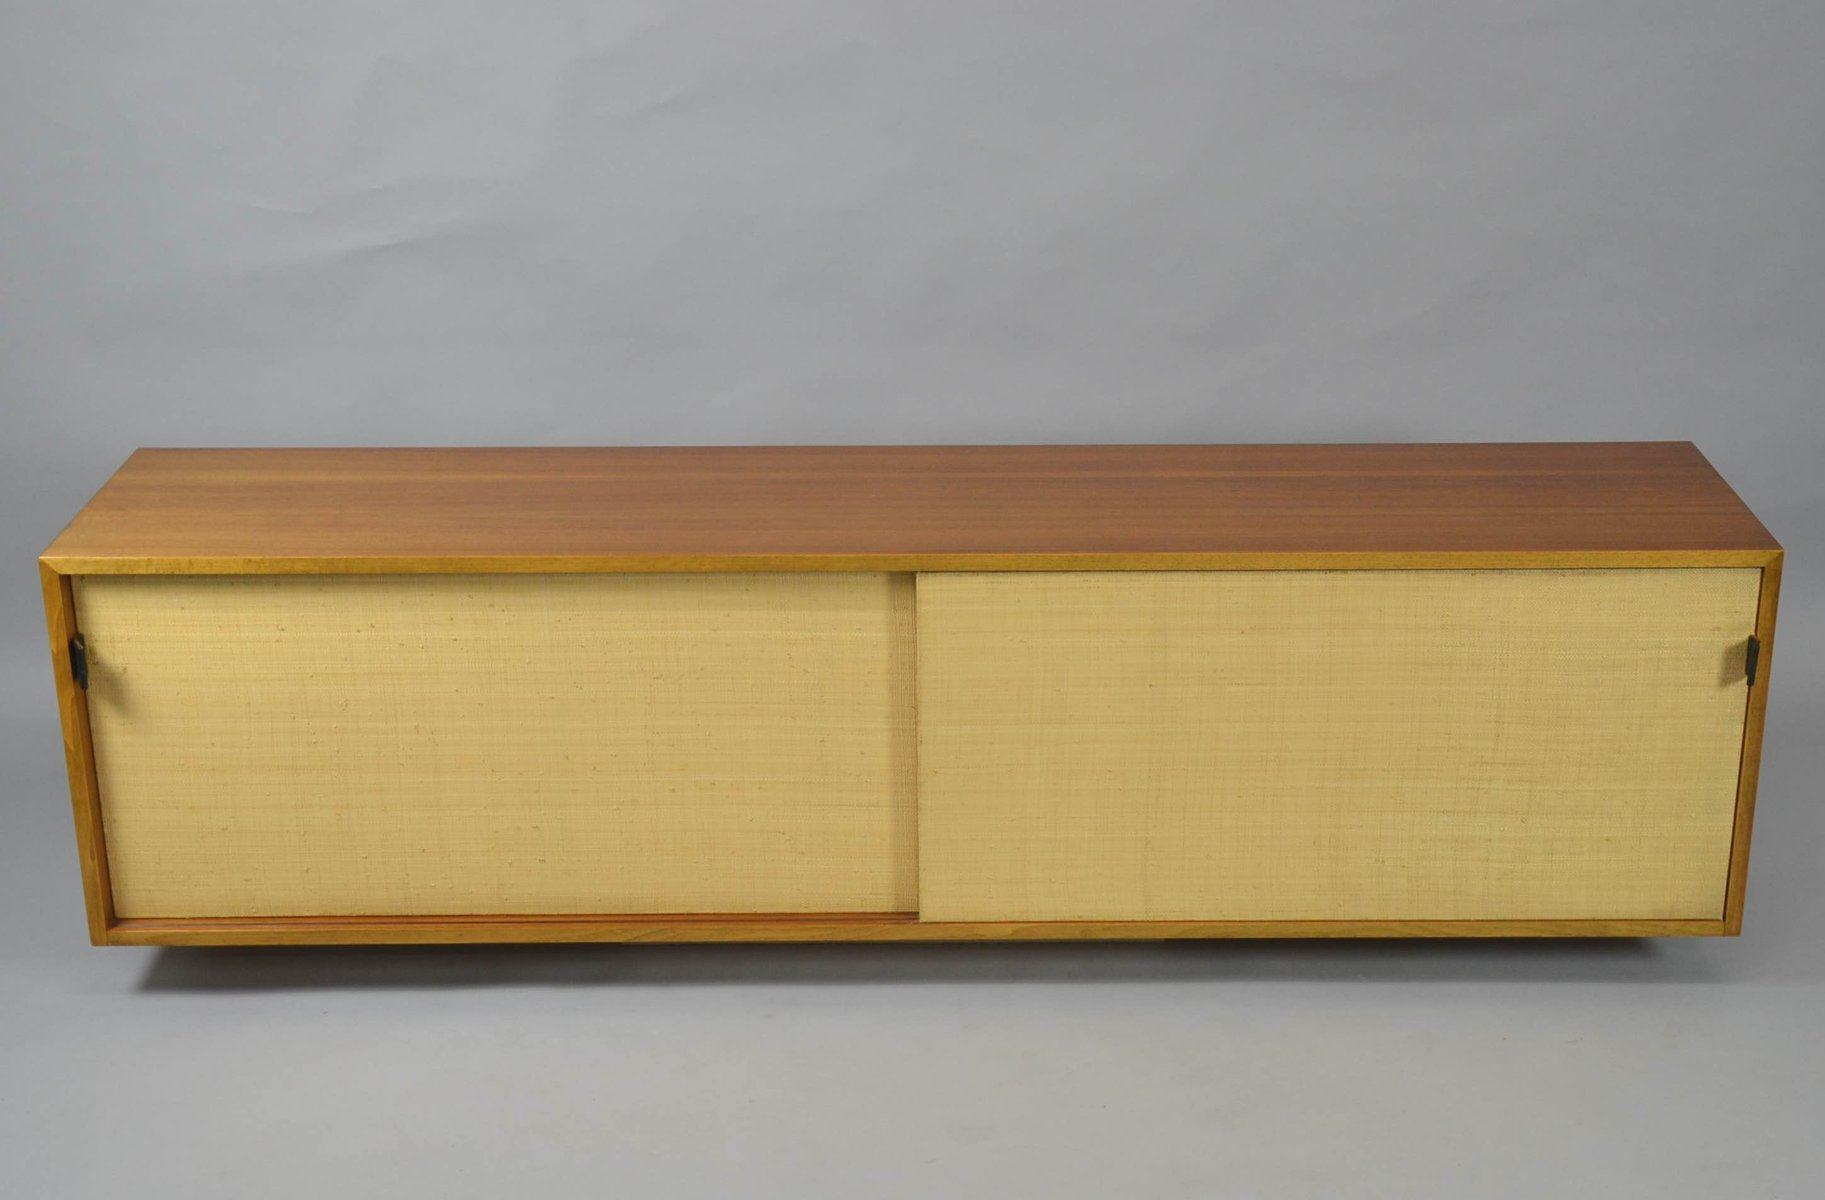 Exceptional Vintage Hanging Cabinet With Sliding Doors By Florence Knoll For Knoll